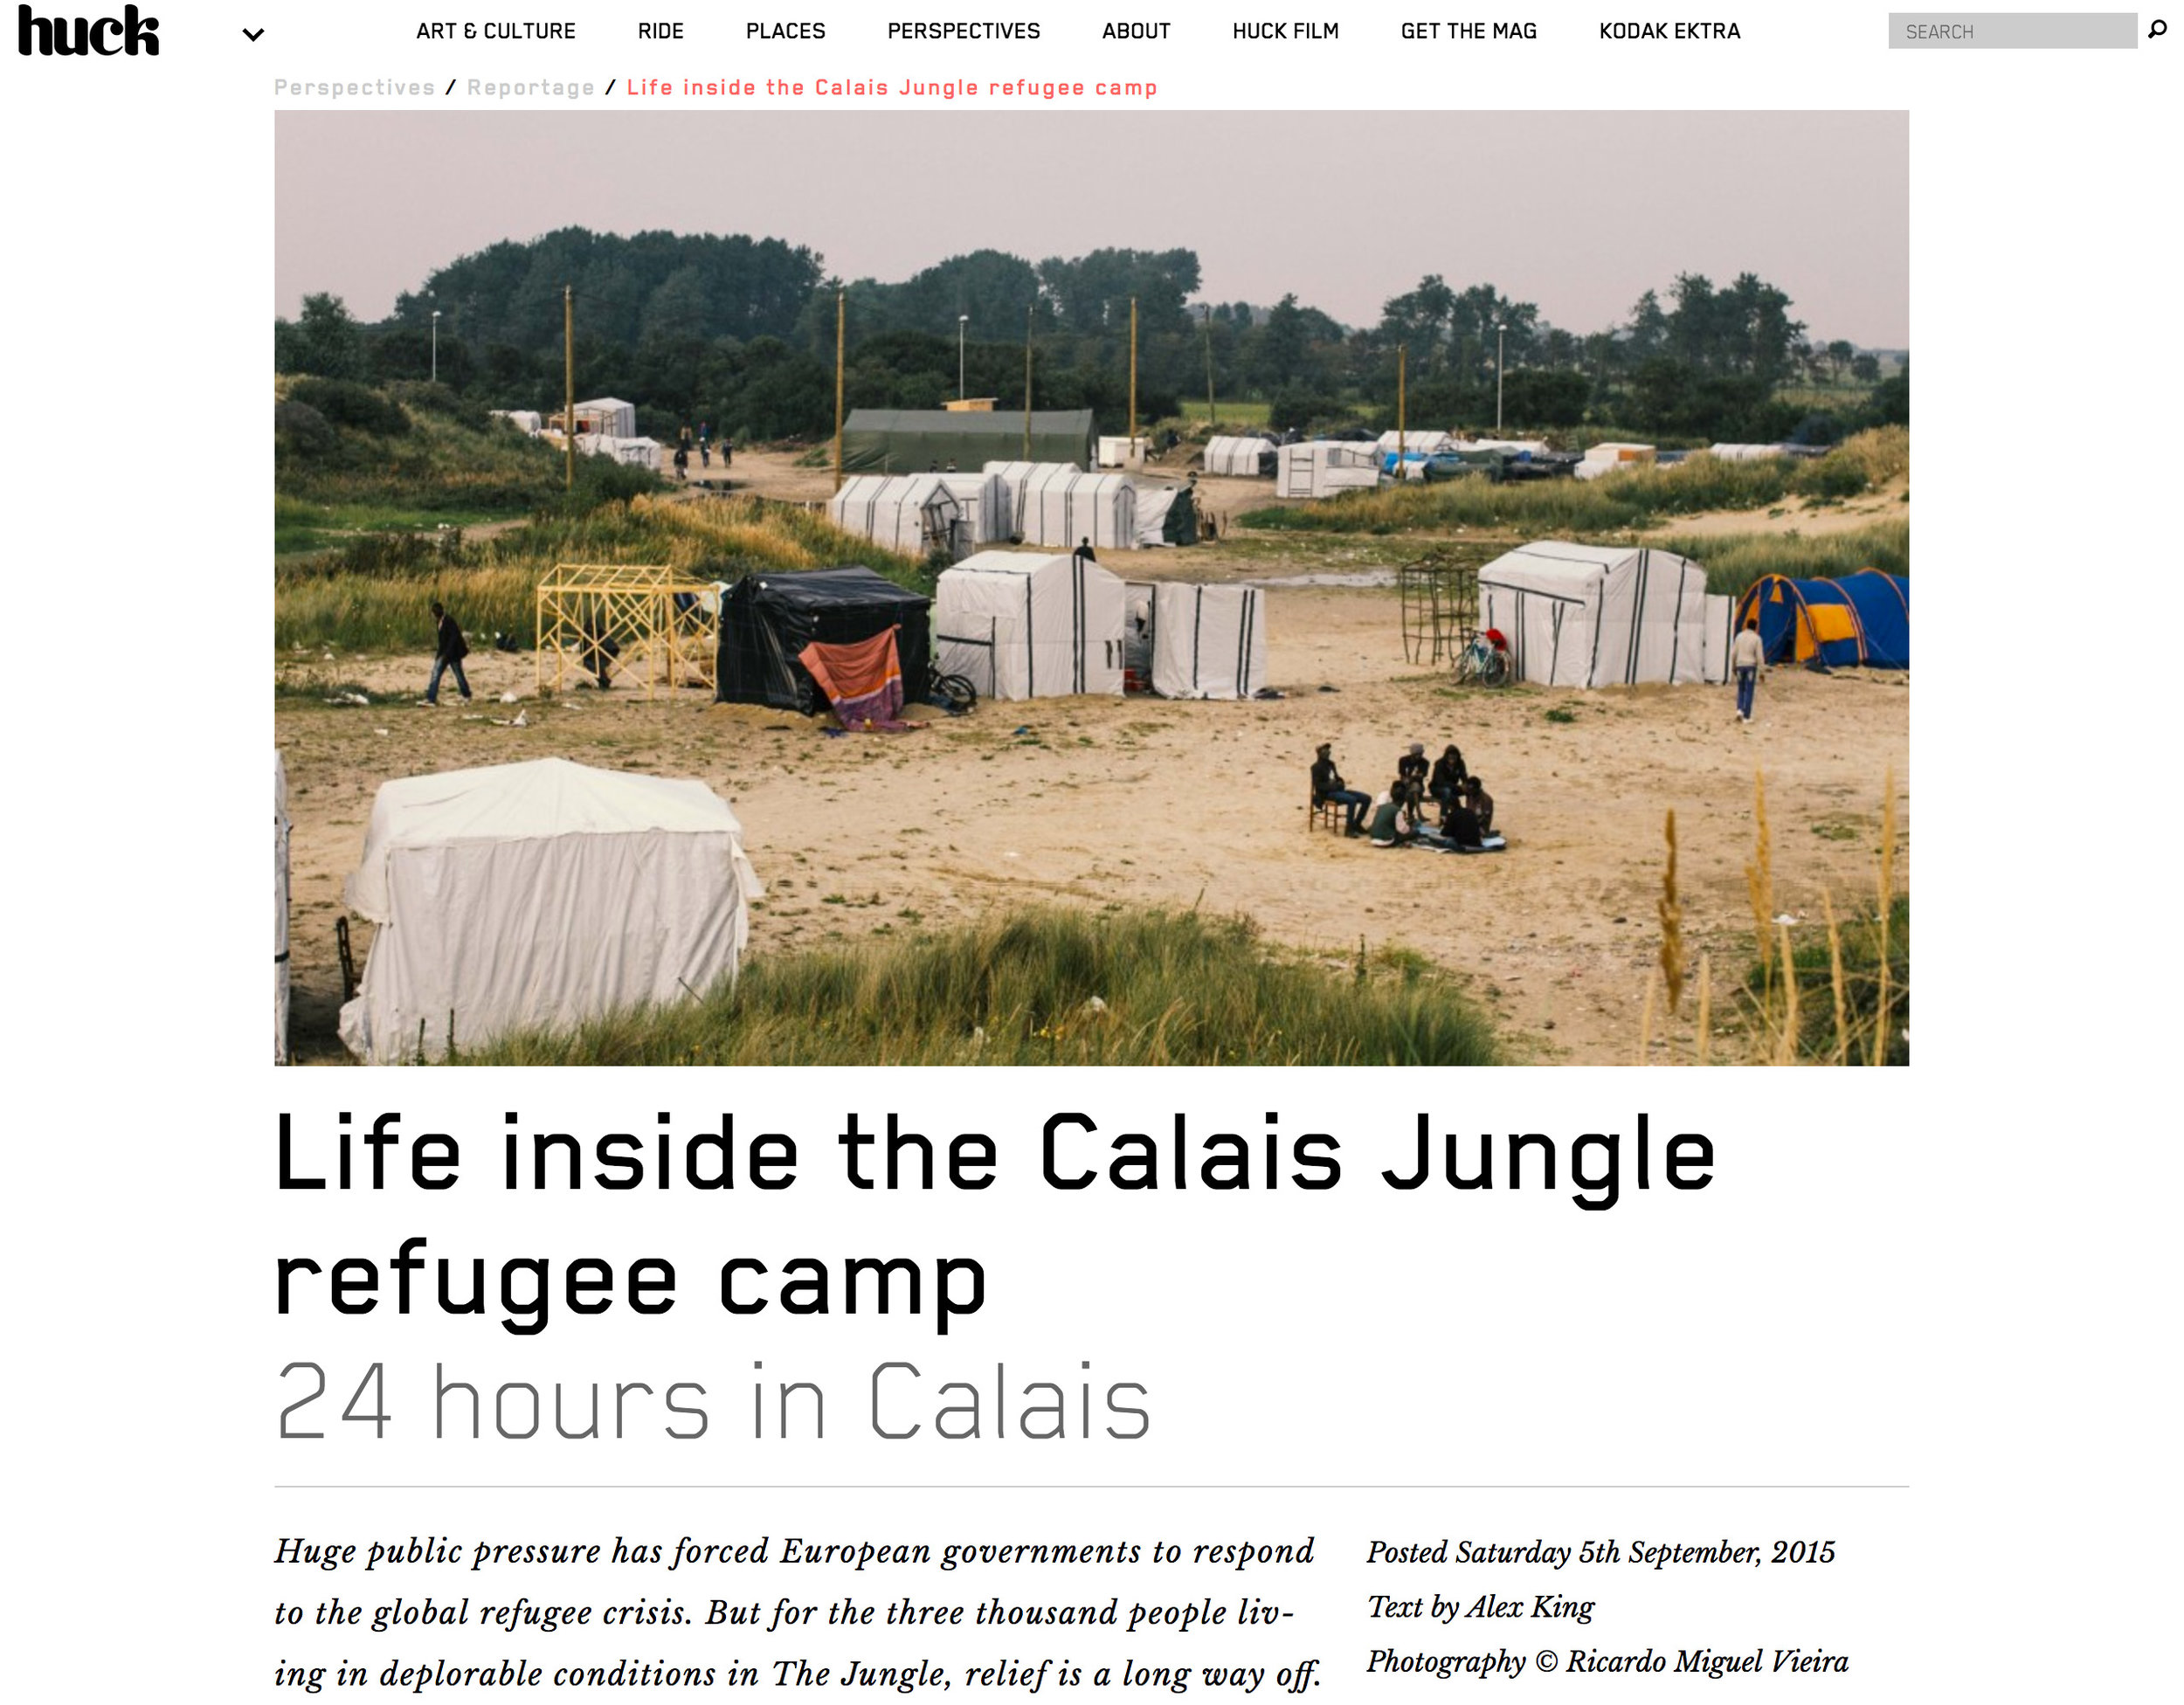 Calais-Jungle---Huck.jpg